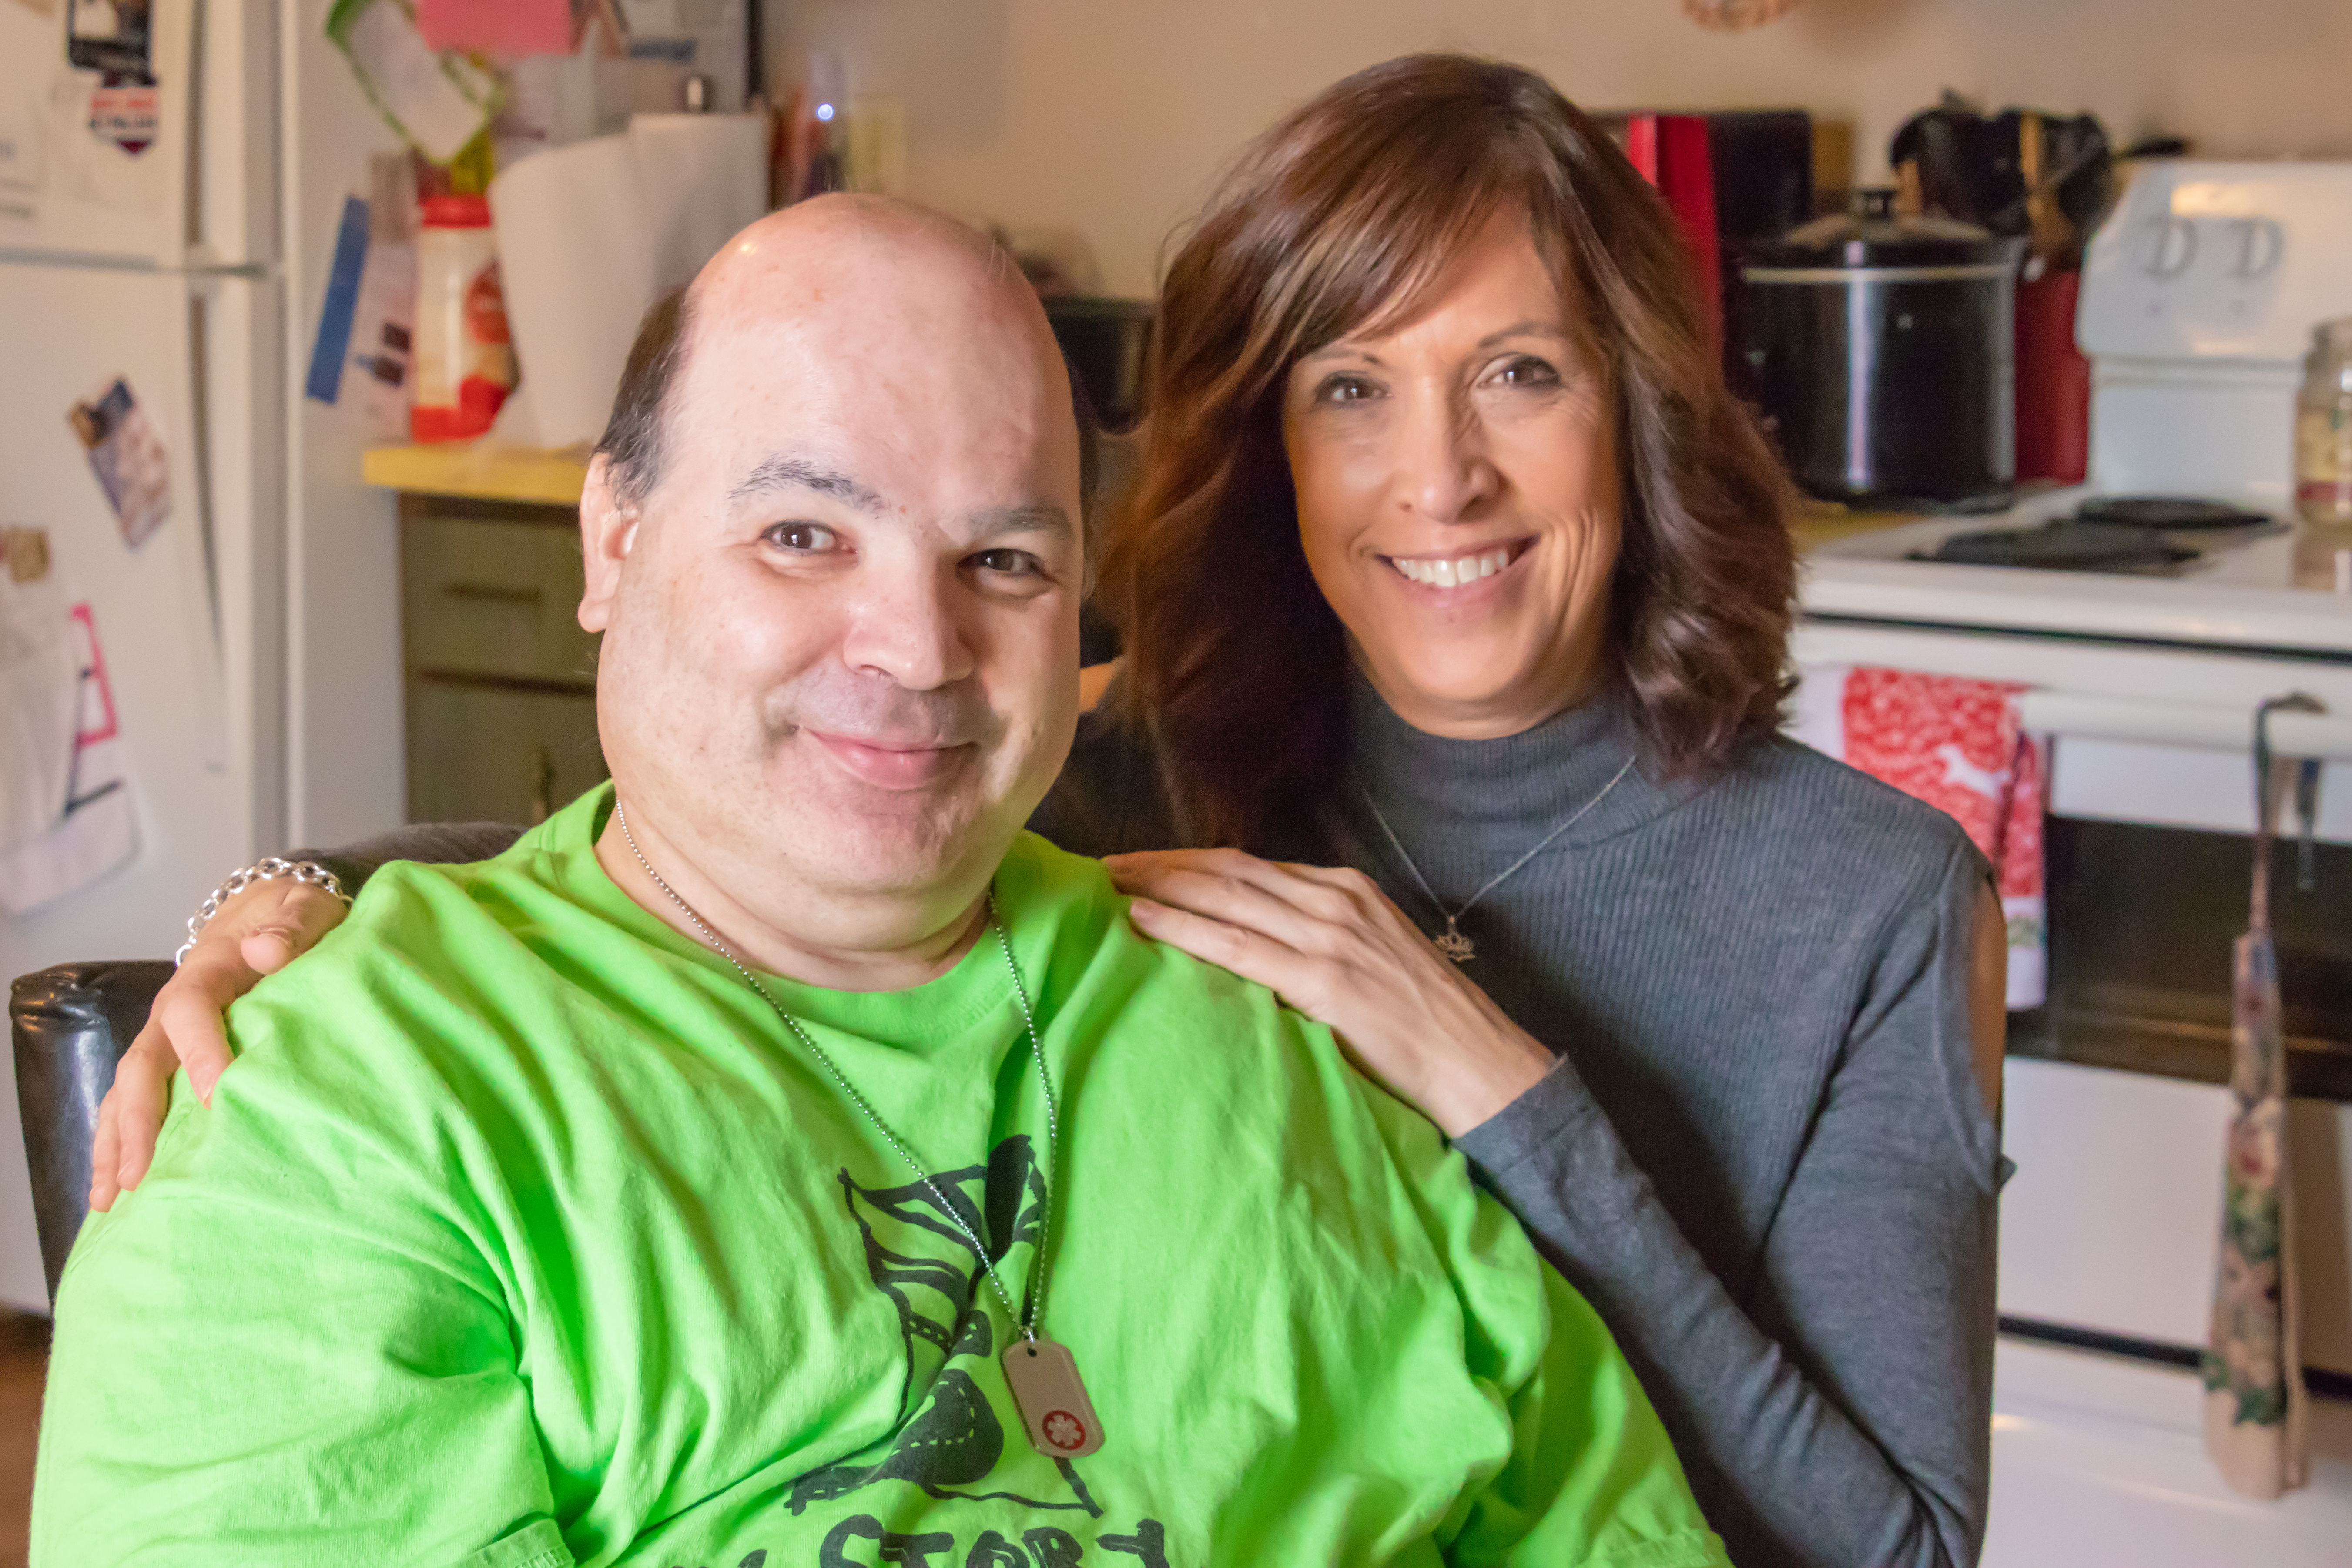 Man sits in his kitchen with a woman who is his service and support administrator